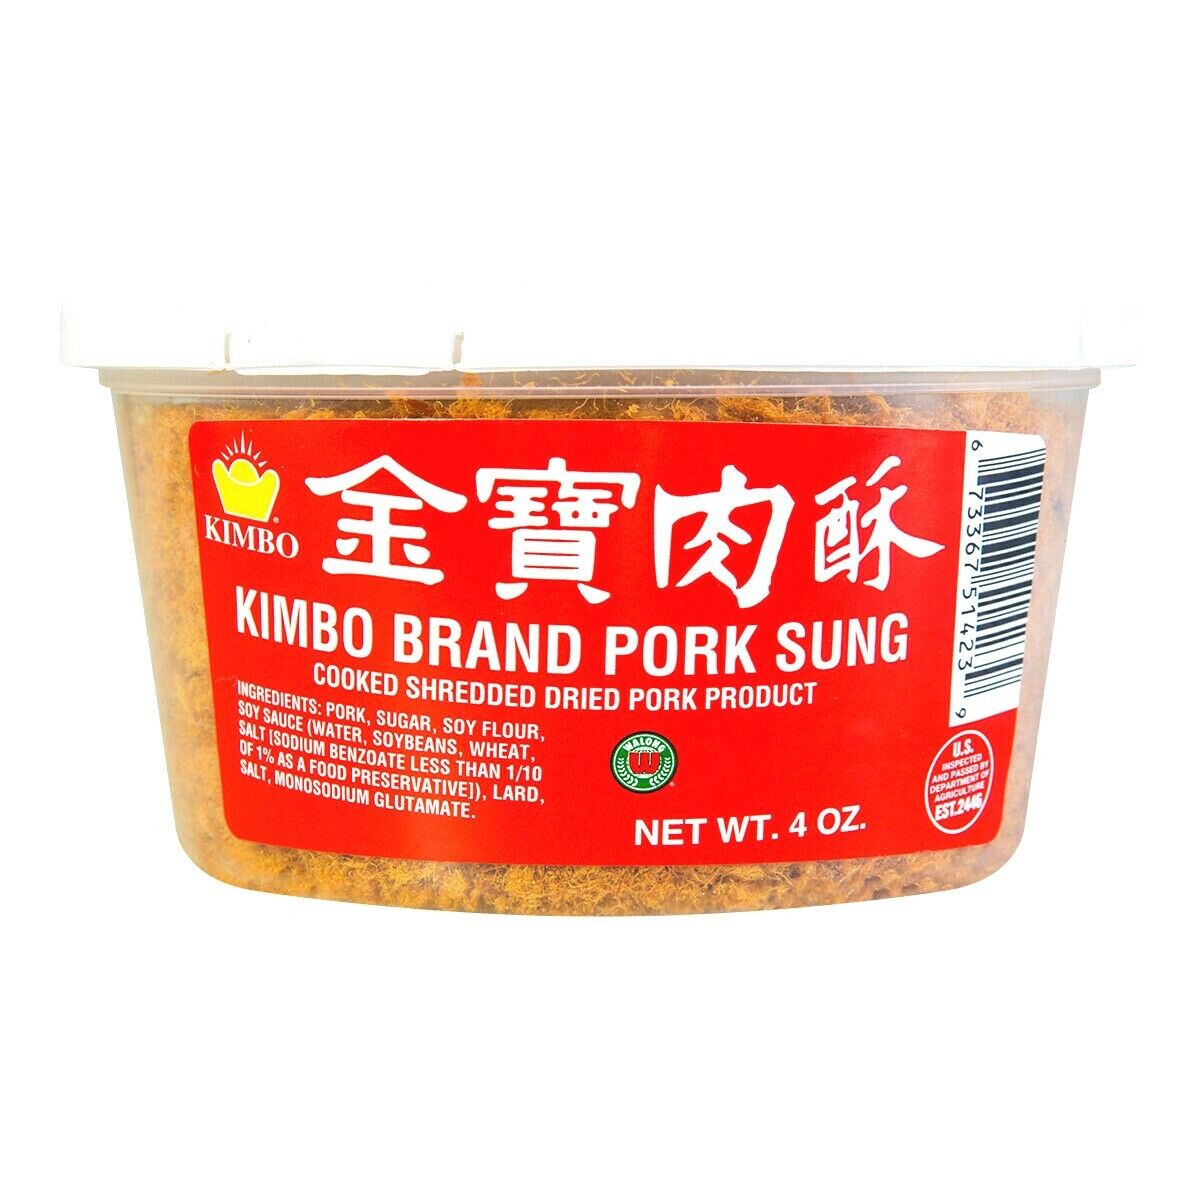 как выглядит KIMBO Brand Pork Sung Cooked Shredded Dried Pork Product 4 oz Pack of 4 фото